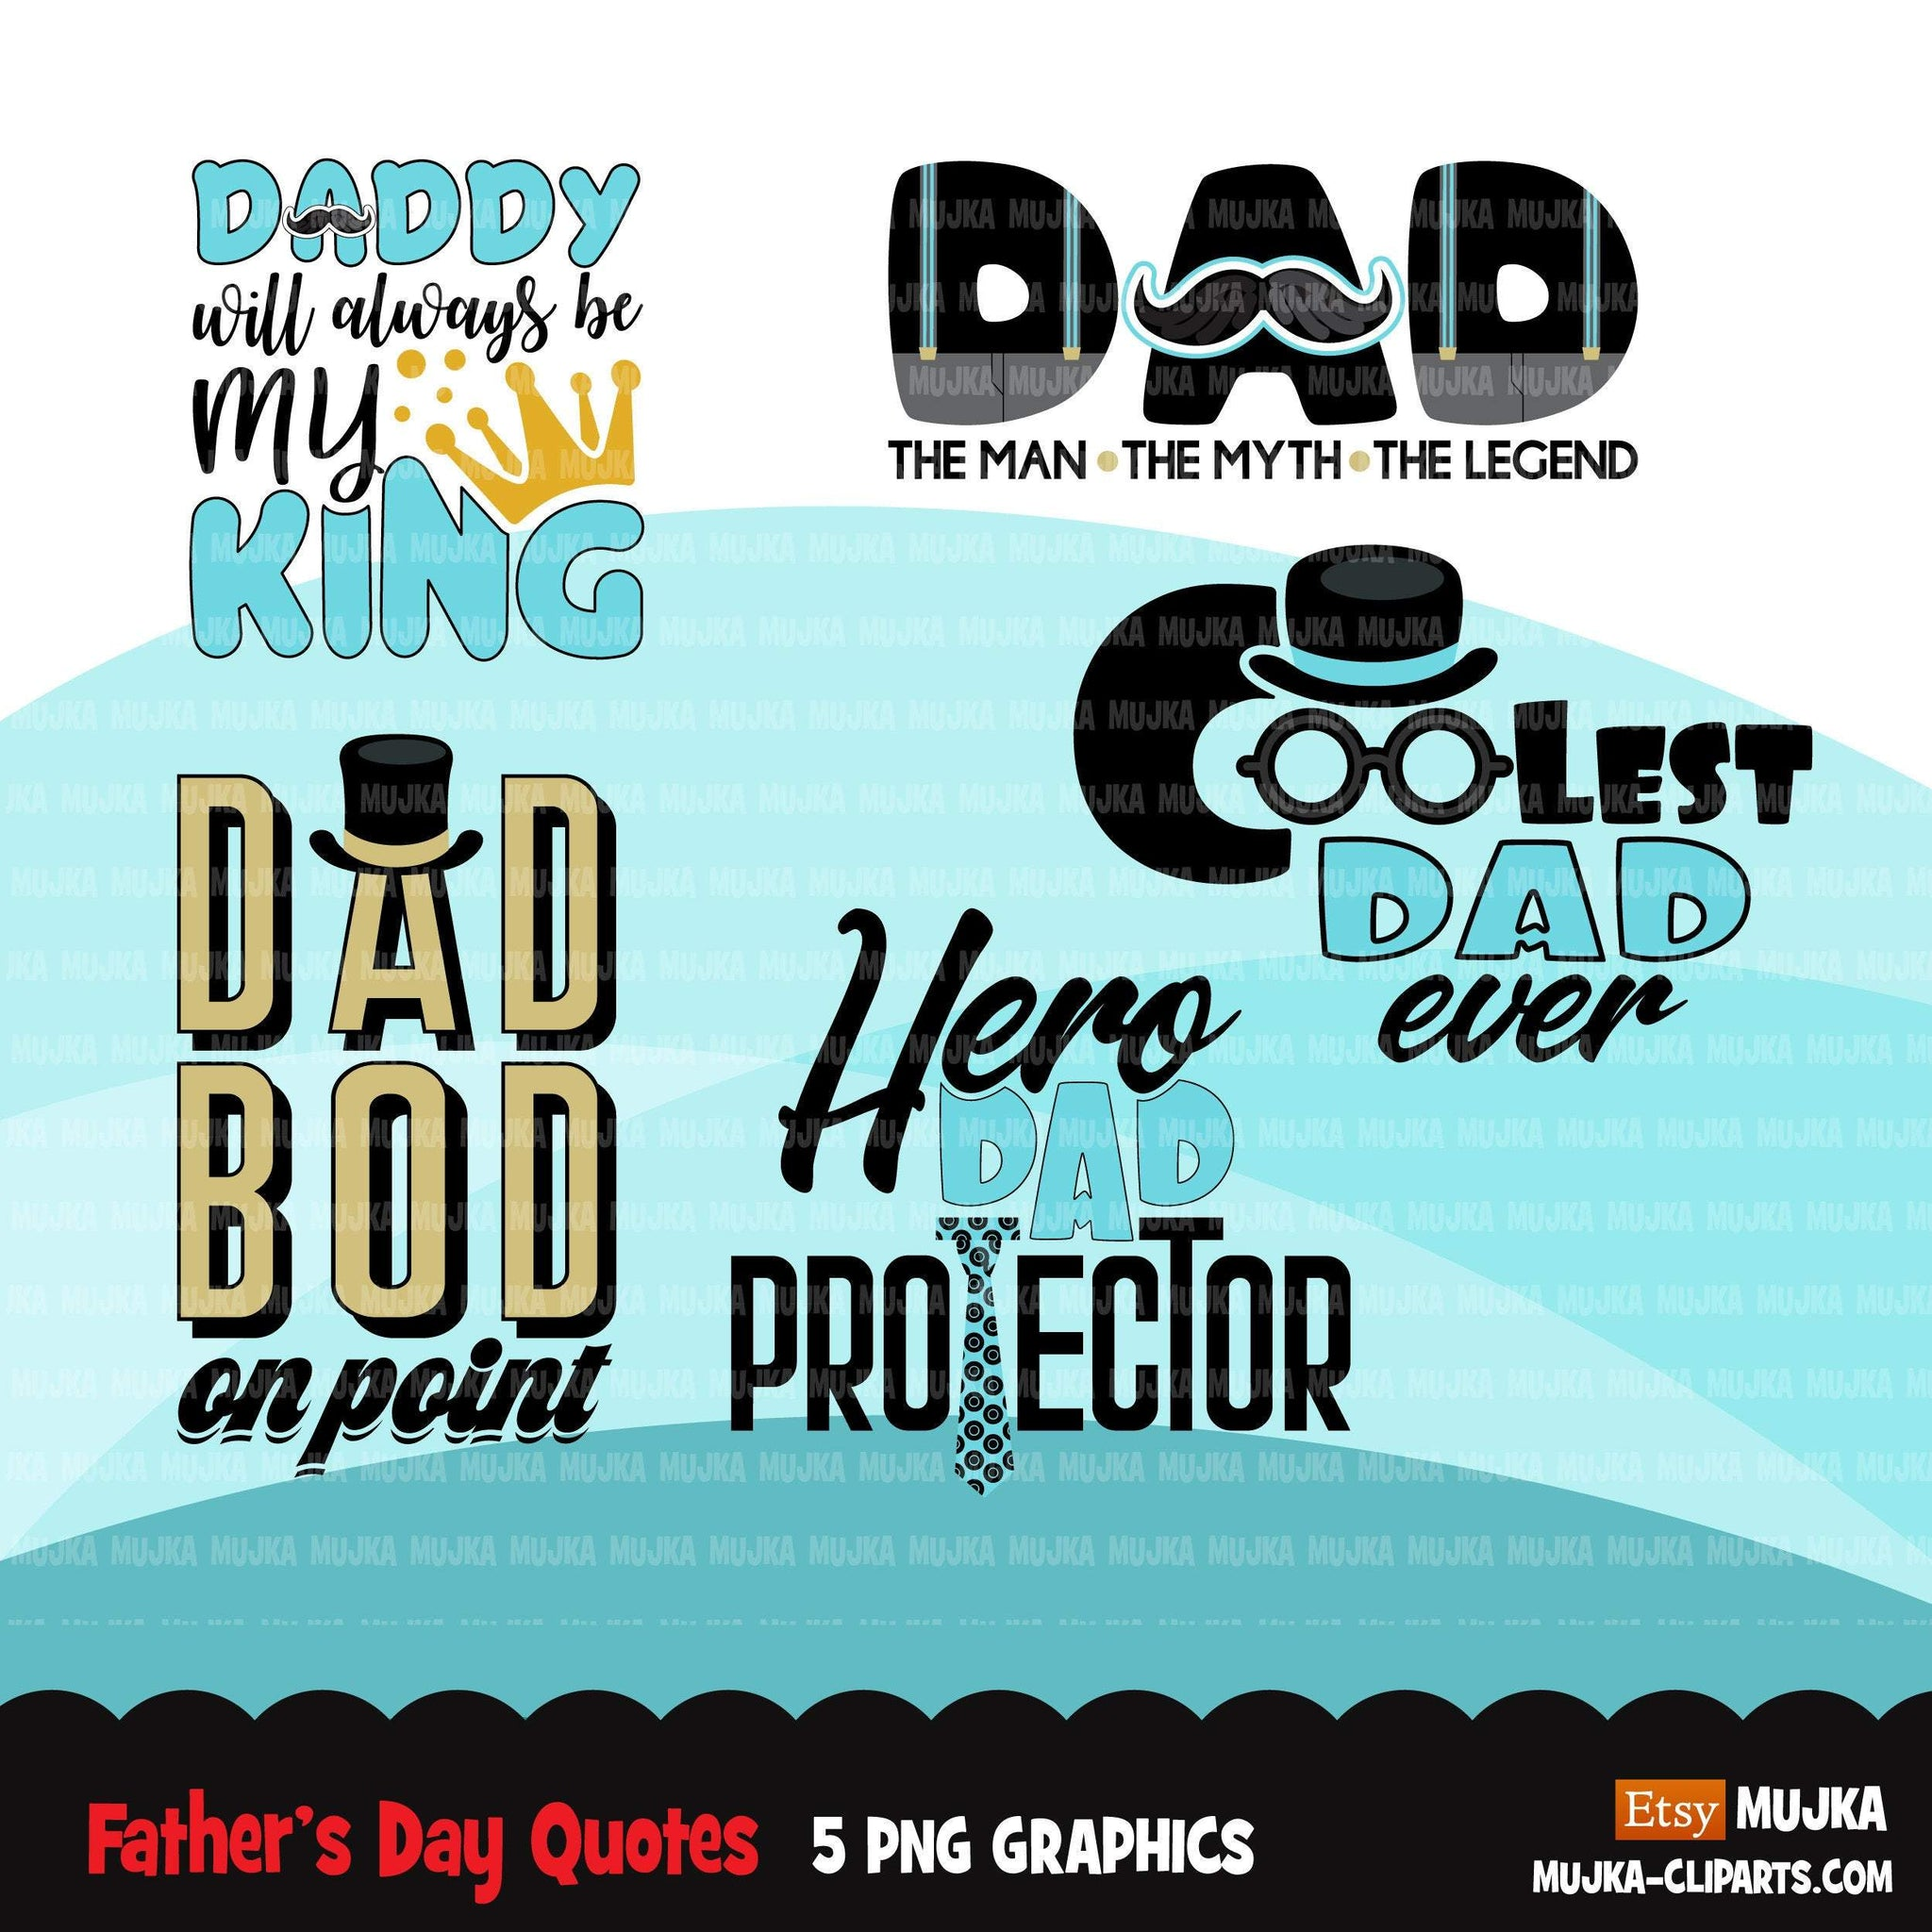 Father's Day Quotes clipart, Father's Day gifts, coolest dad, hero, king, sublimation, commercial use graphics, digital PNG